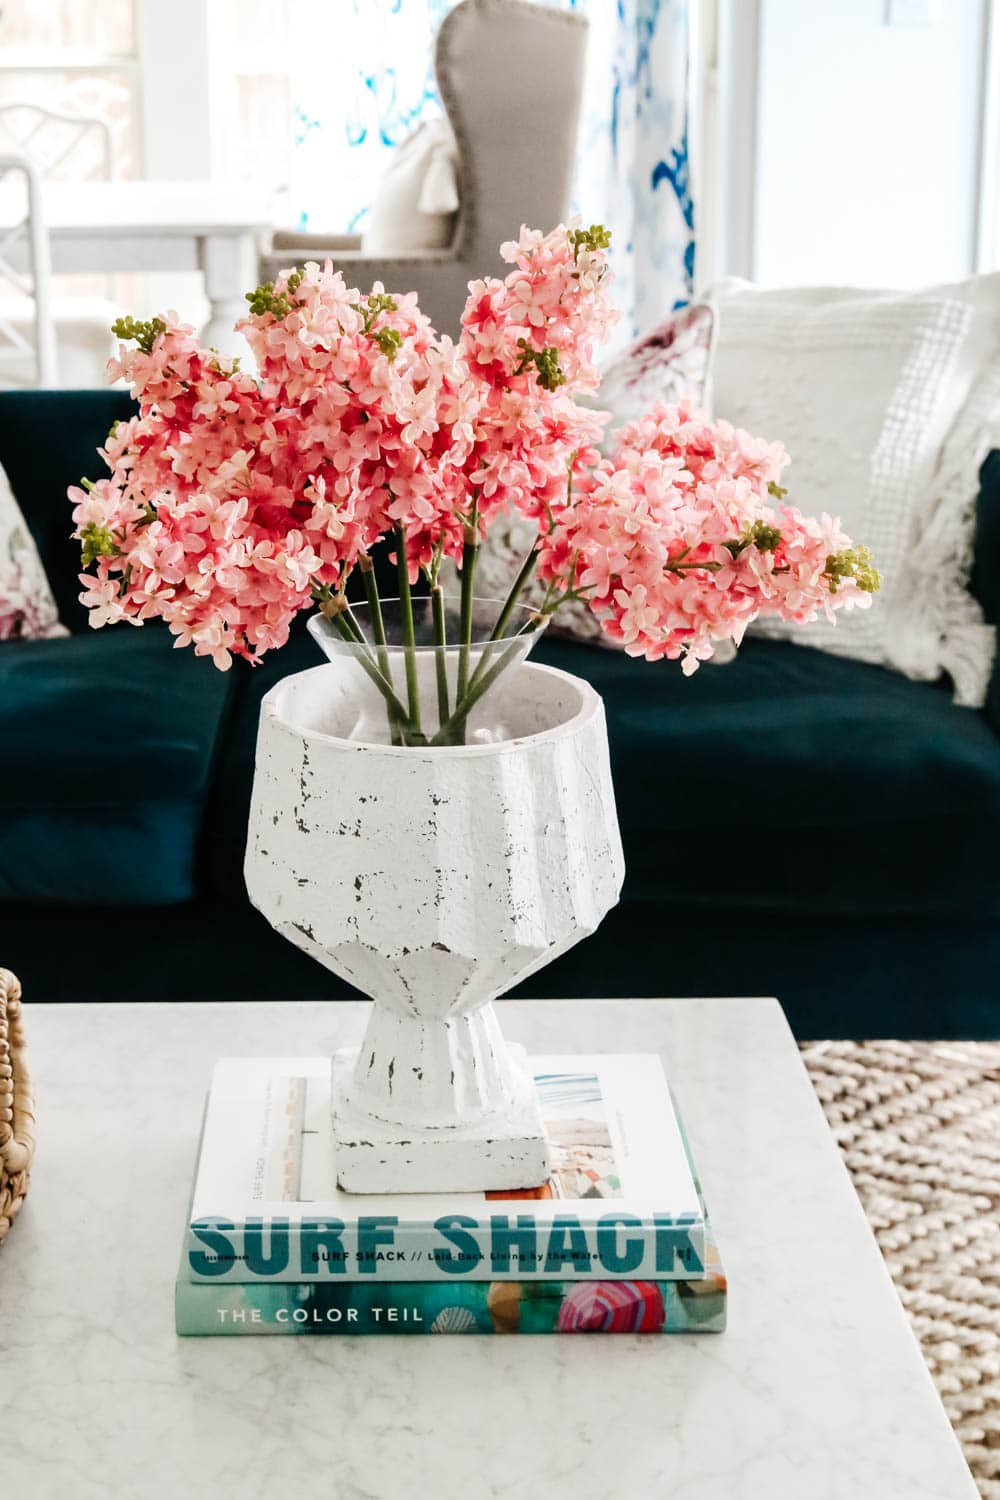 Spring flowers, home decor coffee table books, navy sofa, living room inspiration. #livingroominspo #hometour #fauxflorals #ABlissfulNest